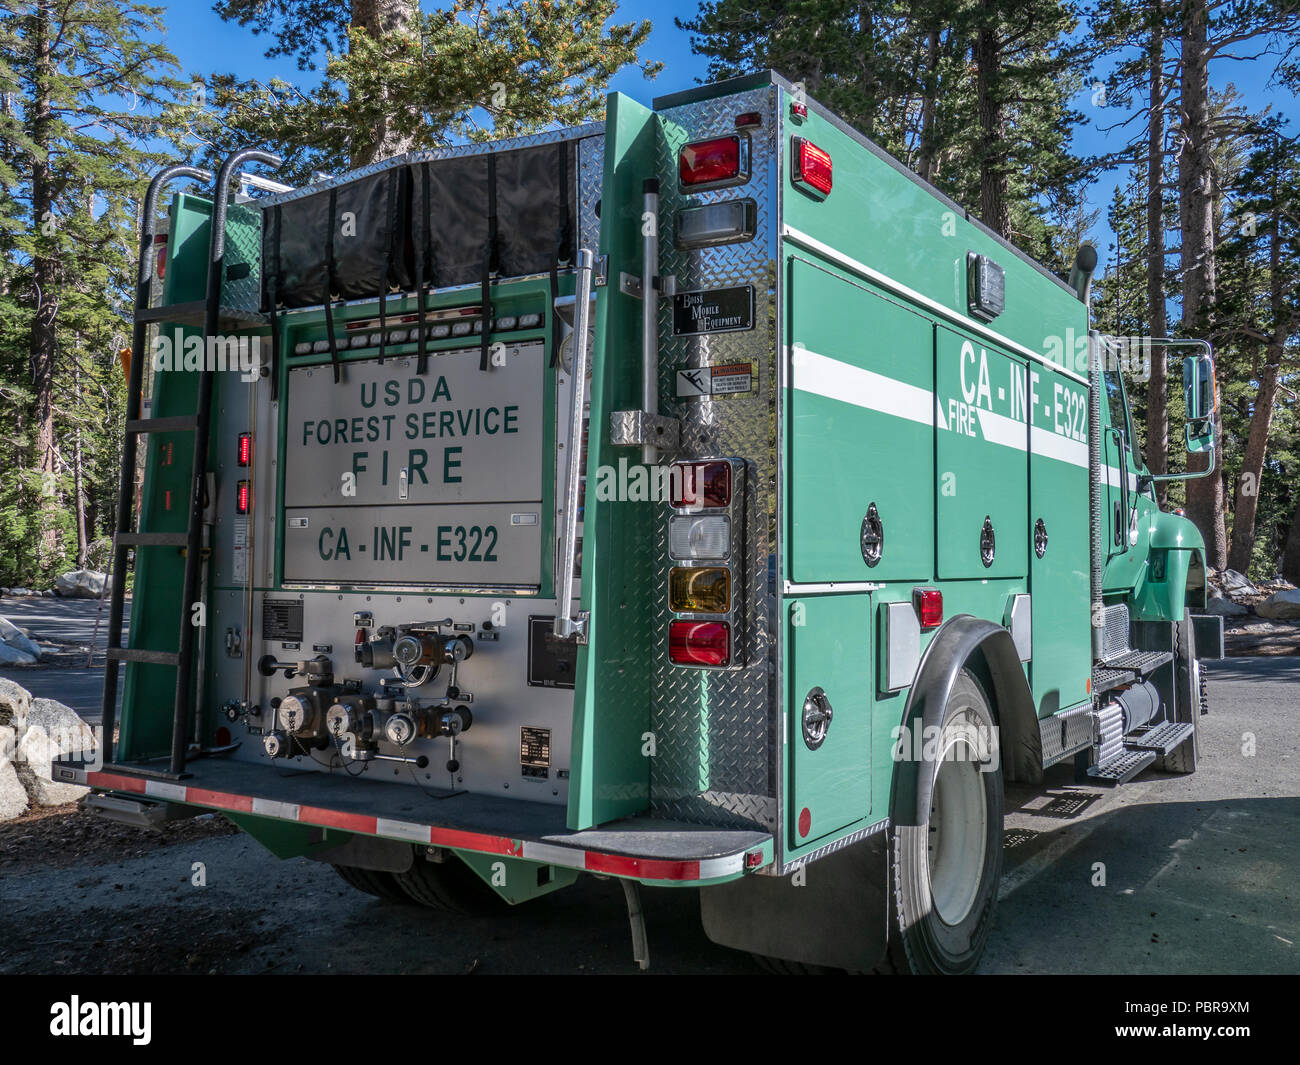 USDA Forest Service fire truck, Lake George, Mammoth Lakes, California. - Stock Image